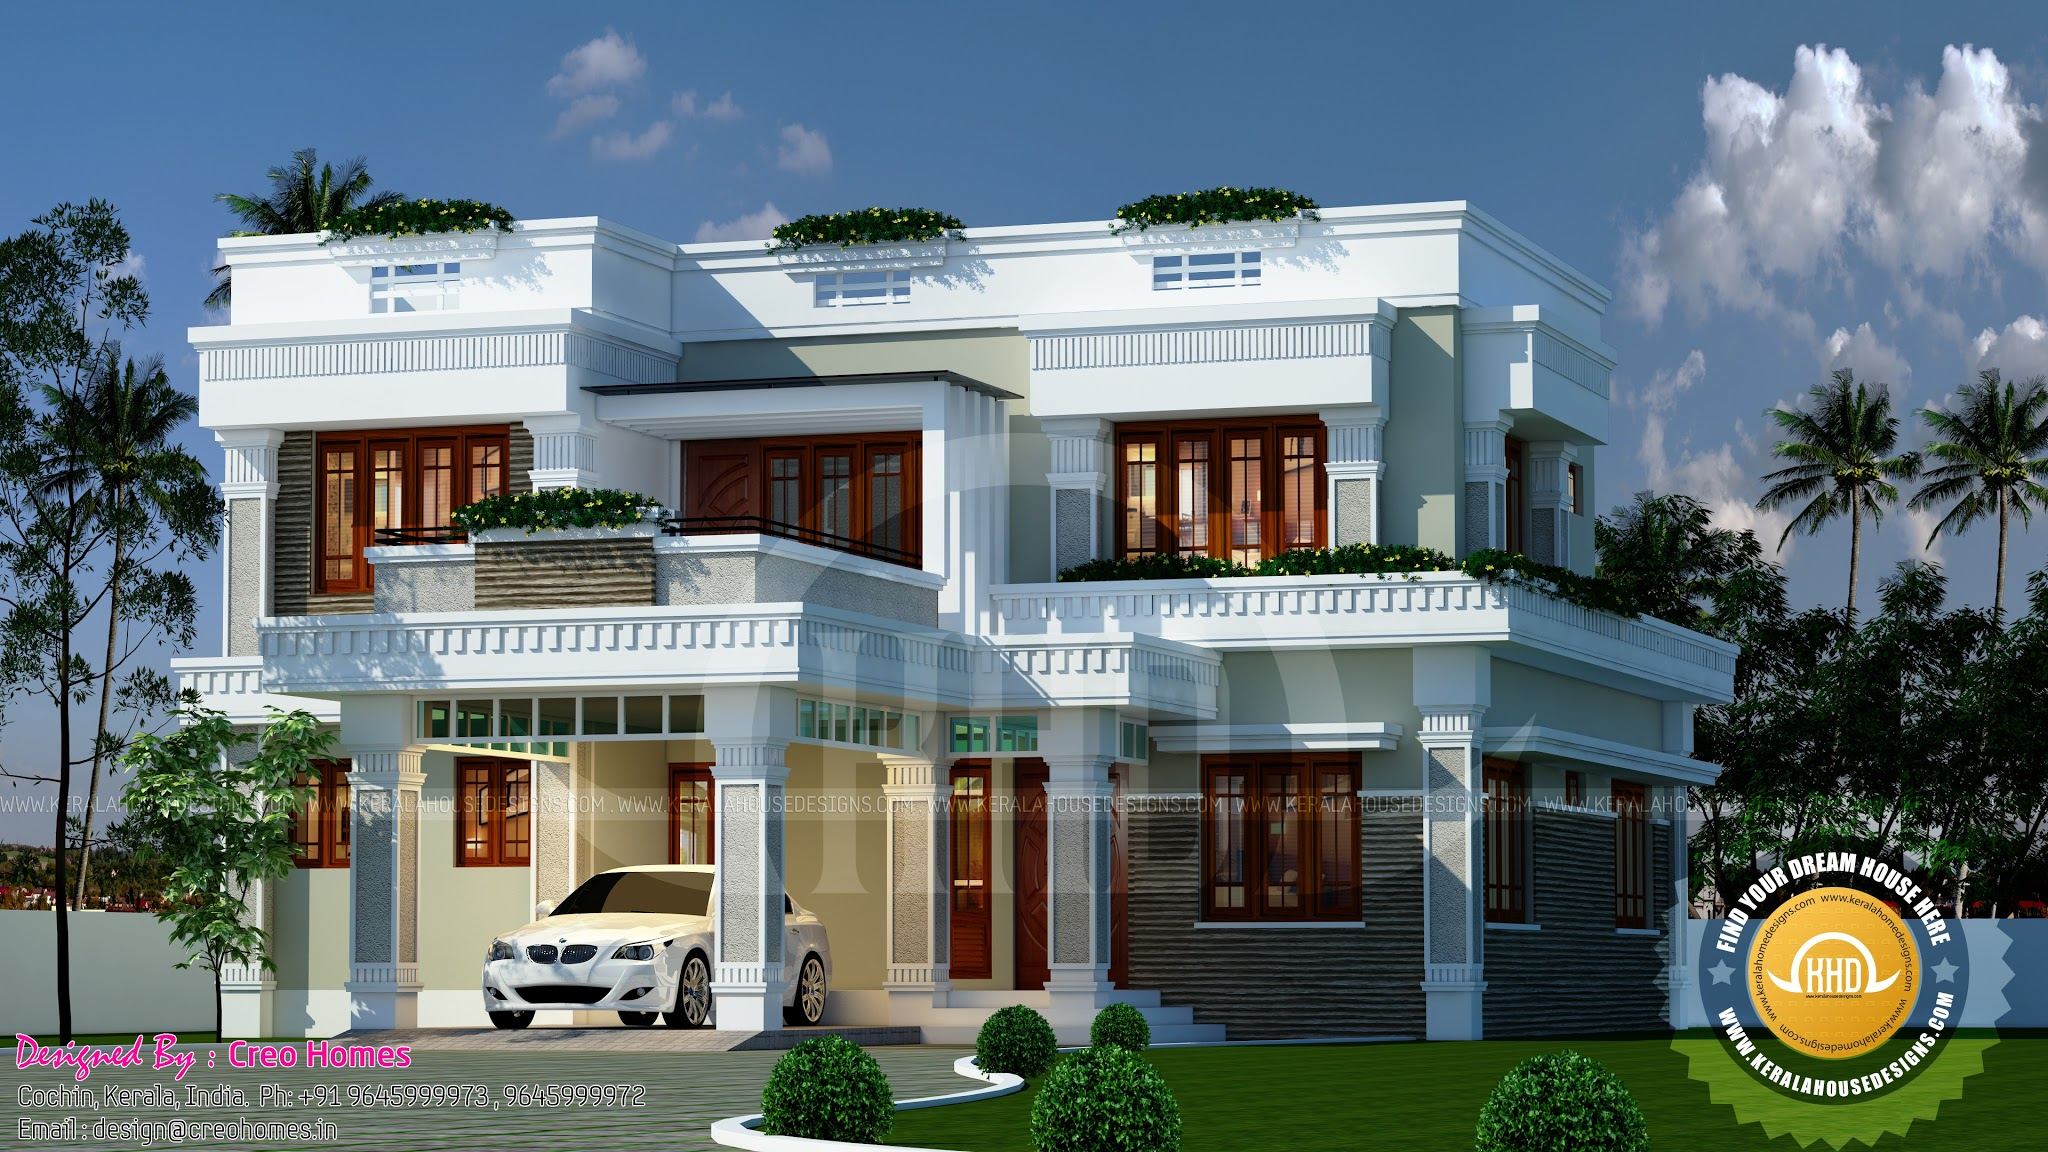 Decorative flat roof home plan kerala home design and - Interior and exterior home design ...